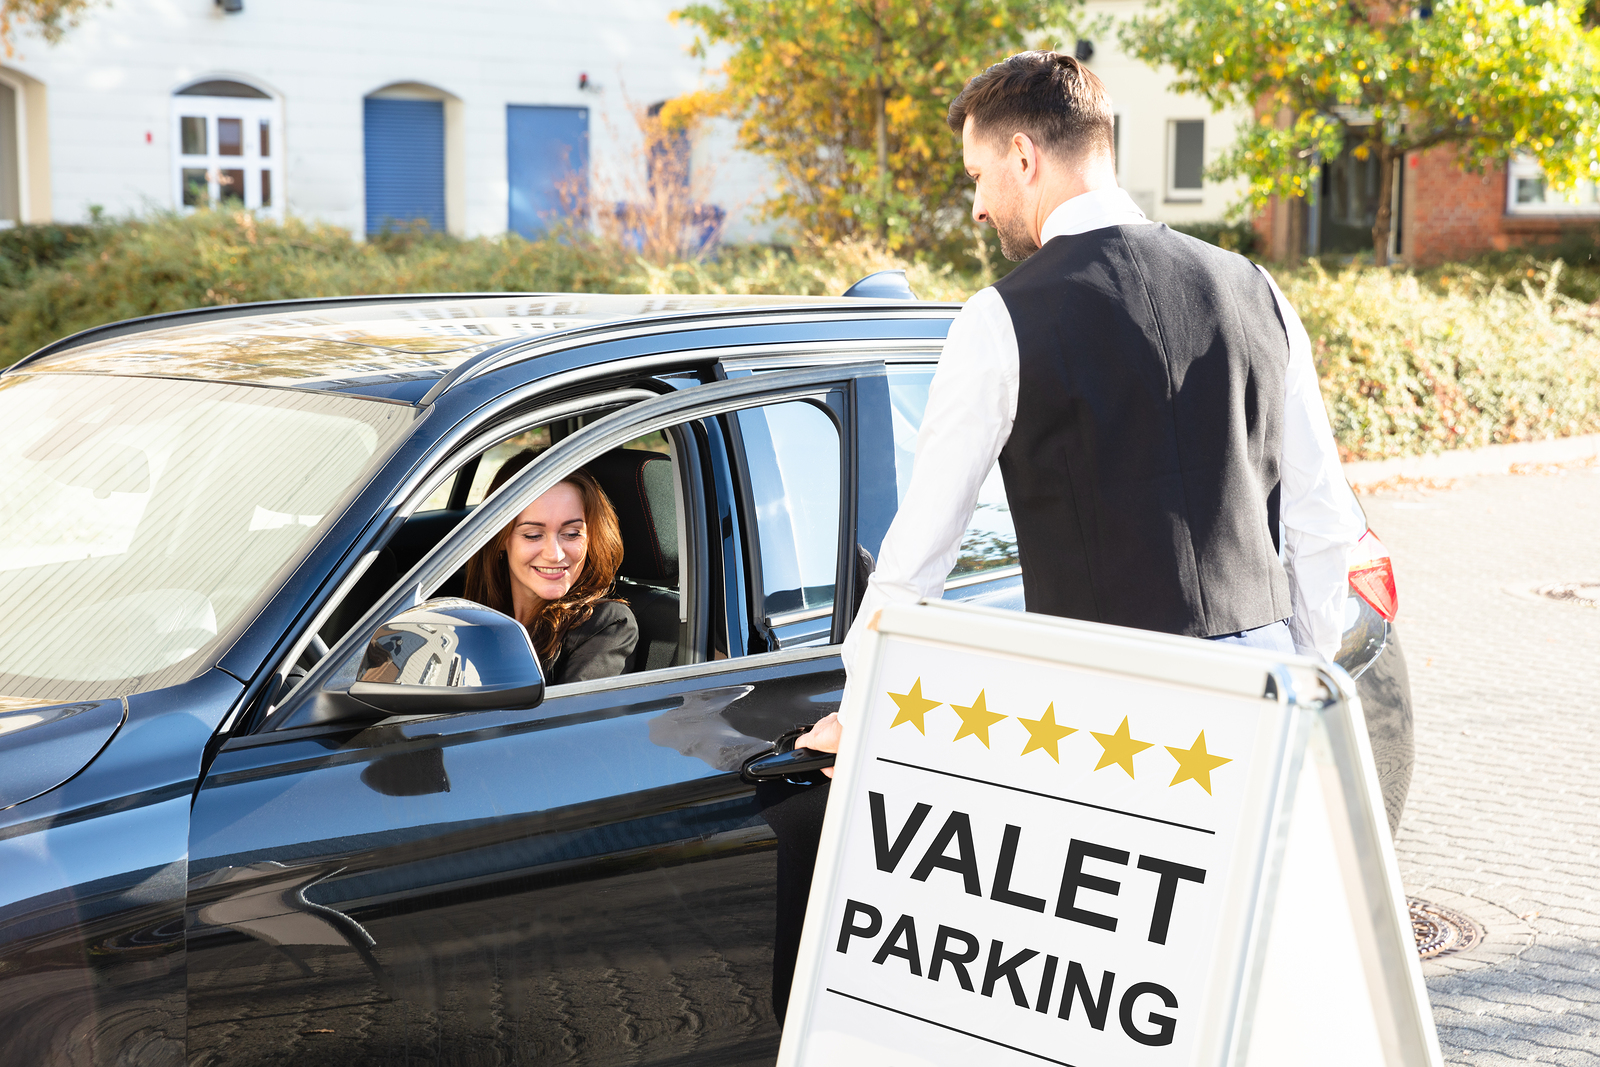 A valet parking attendant is opening the car door for a guest.